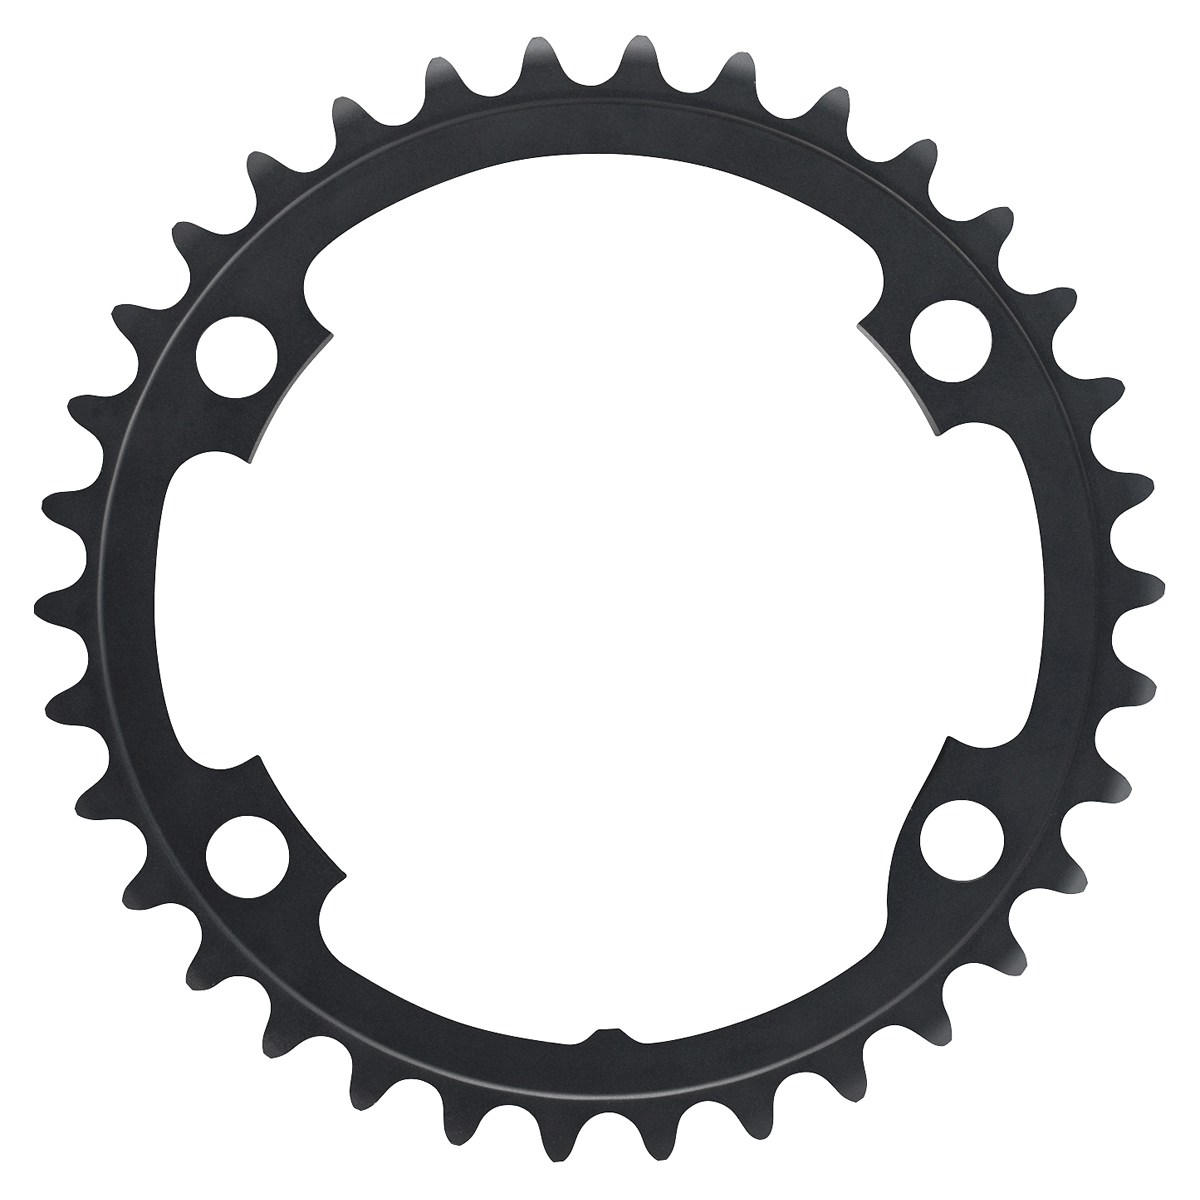 Shimano Klinge 105 FC-R7000 - 11 speed BCD 110/4 - 36T - Y1WV36000 | chainrings_component